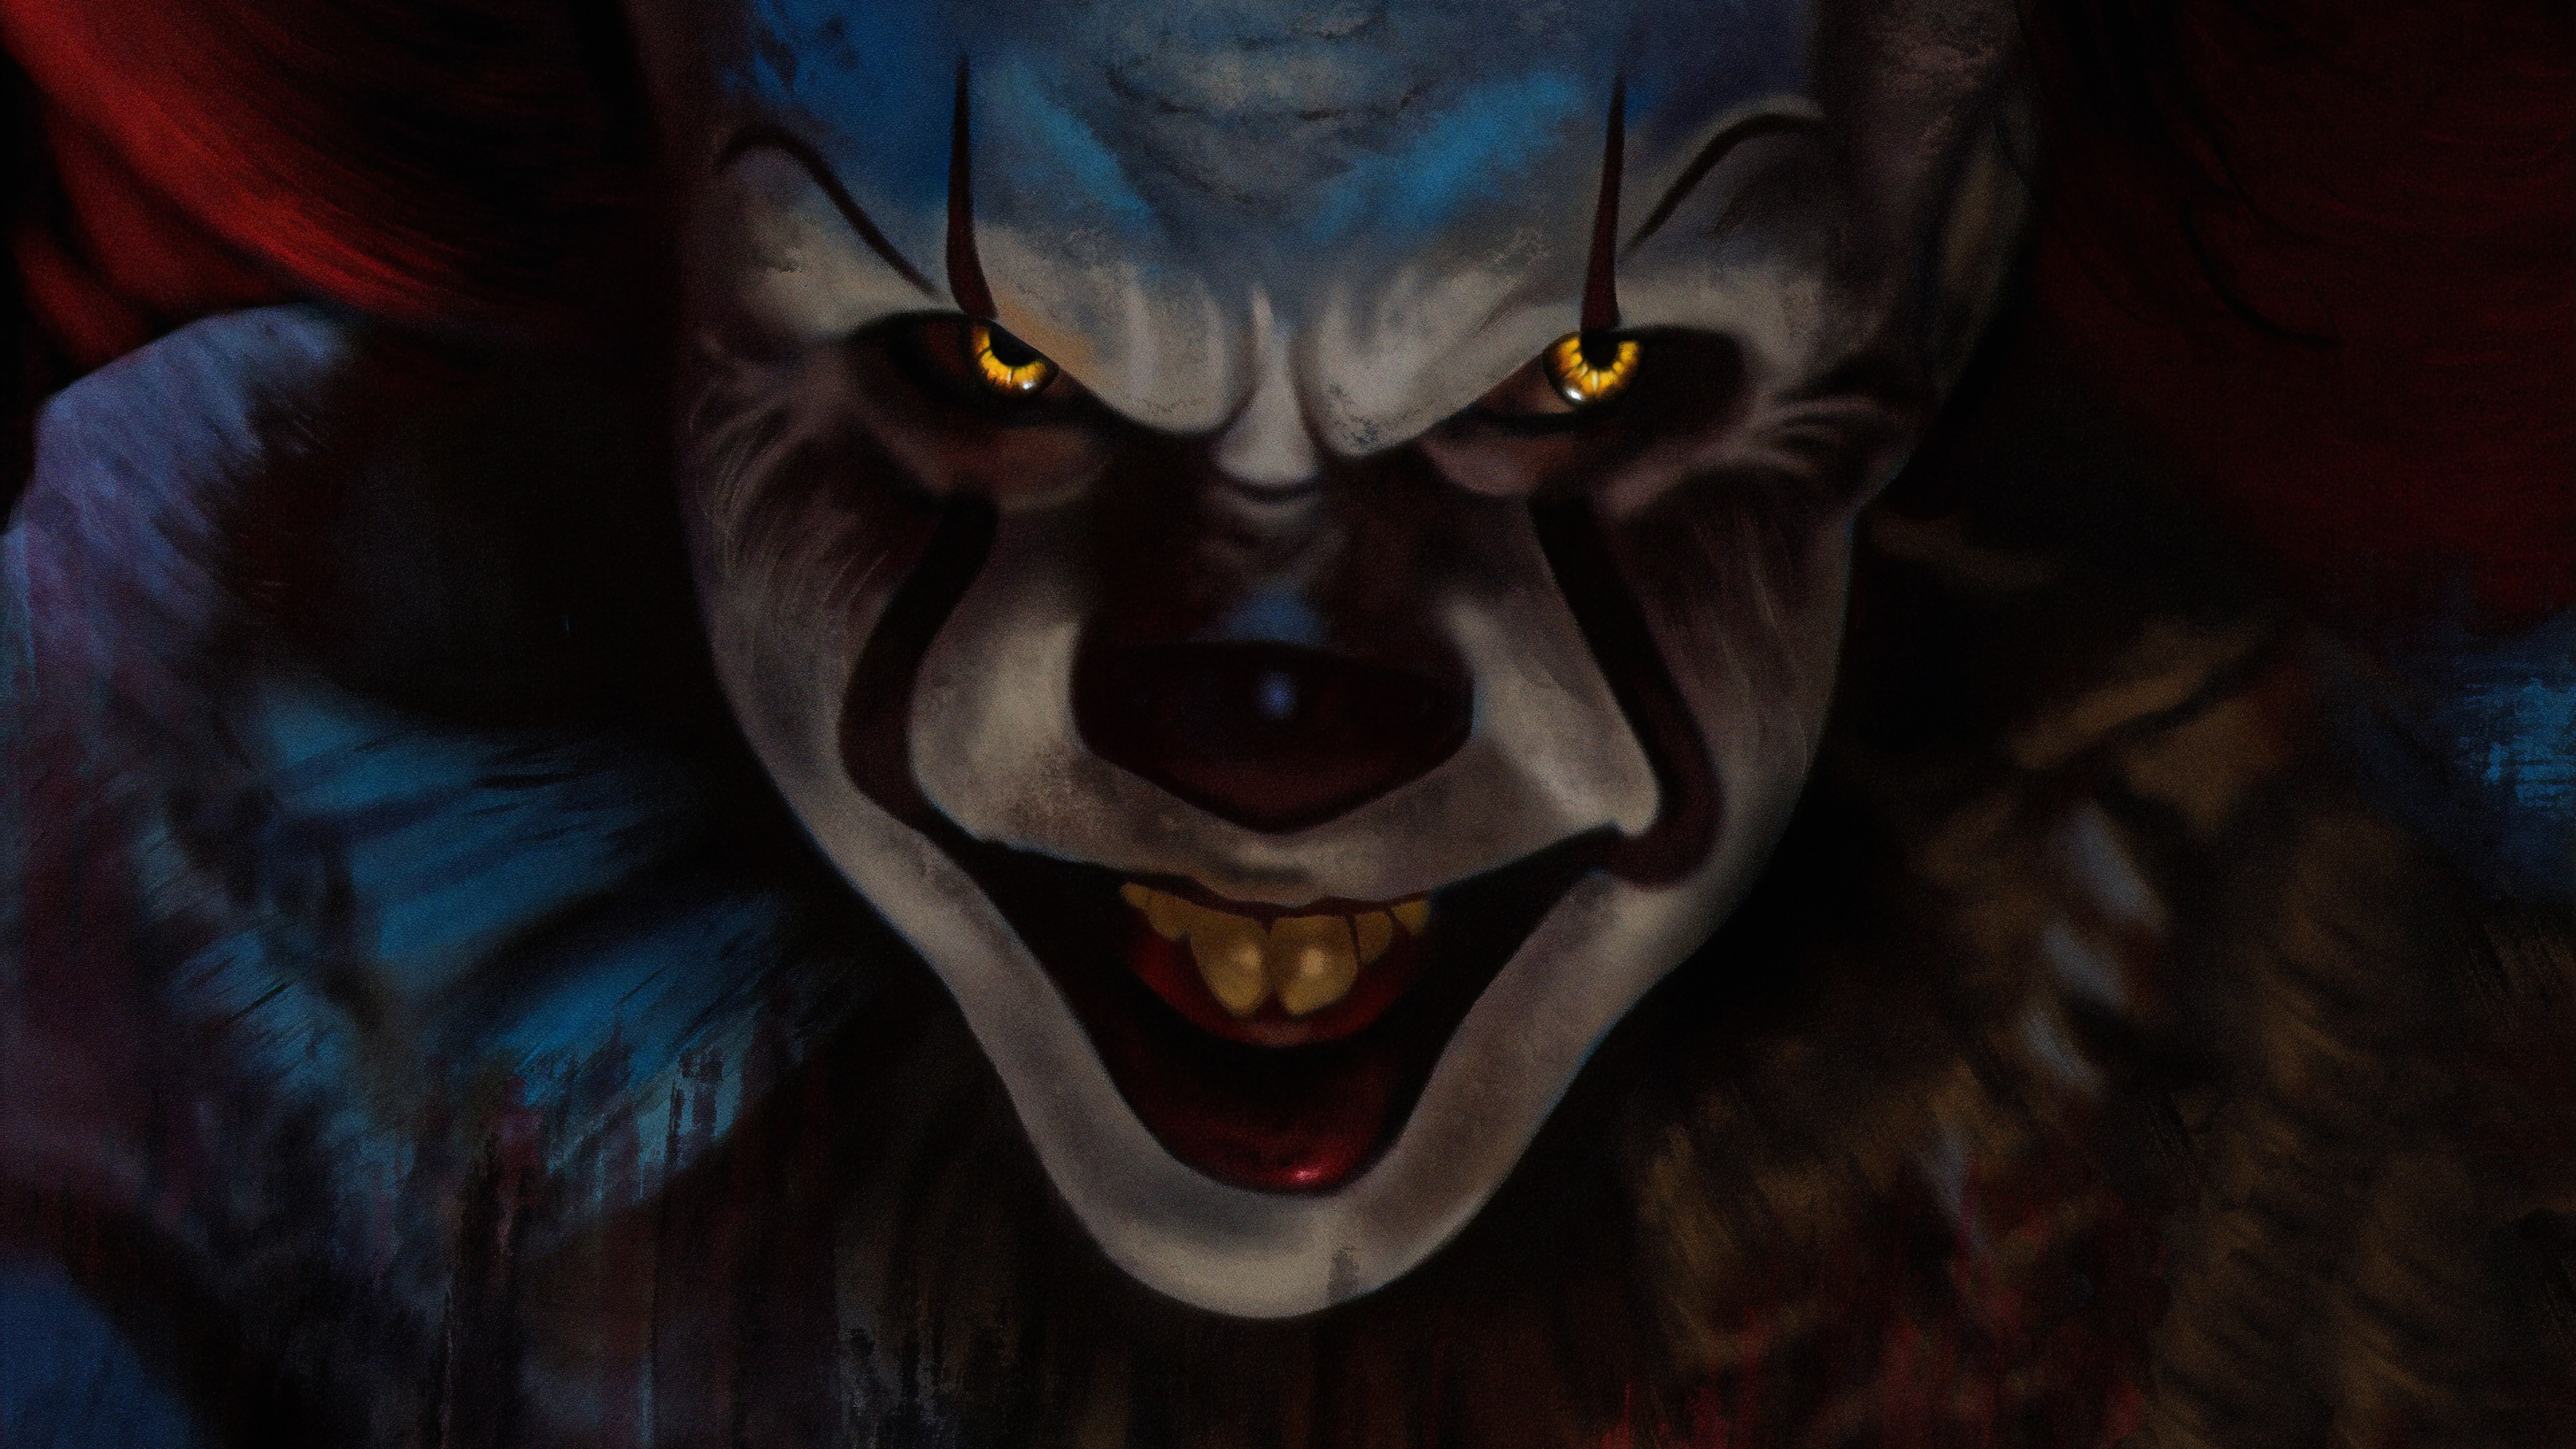 3840x2160 Pennywise 4k 2019 4k HD 4k Wallpapers, Images ...